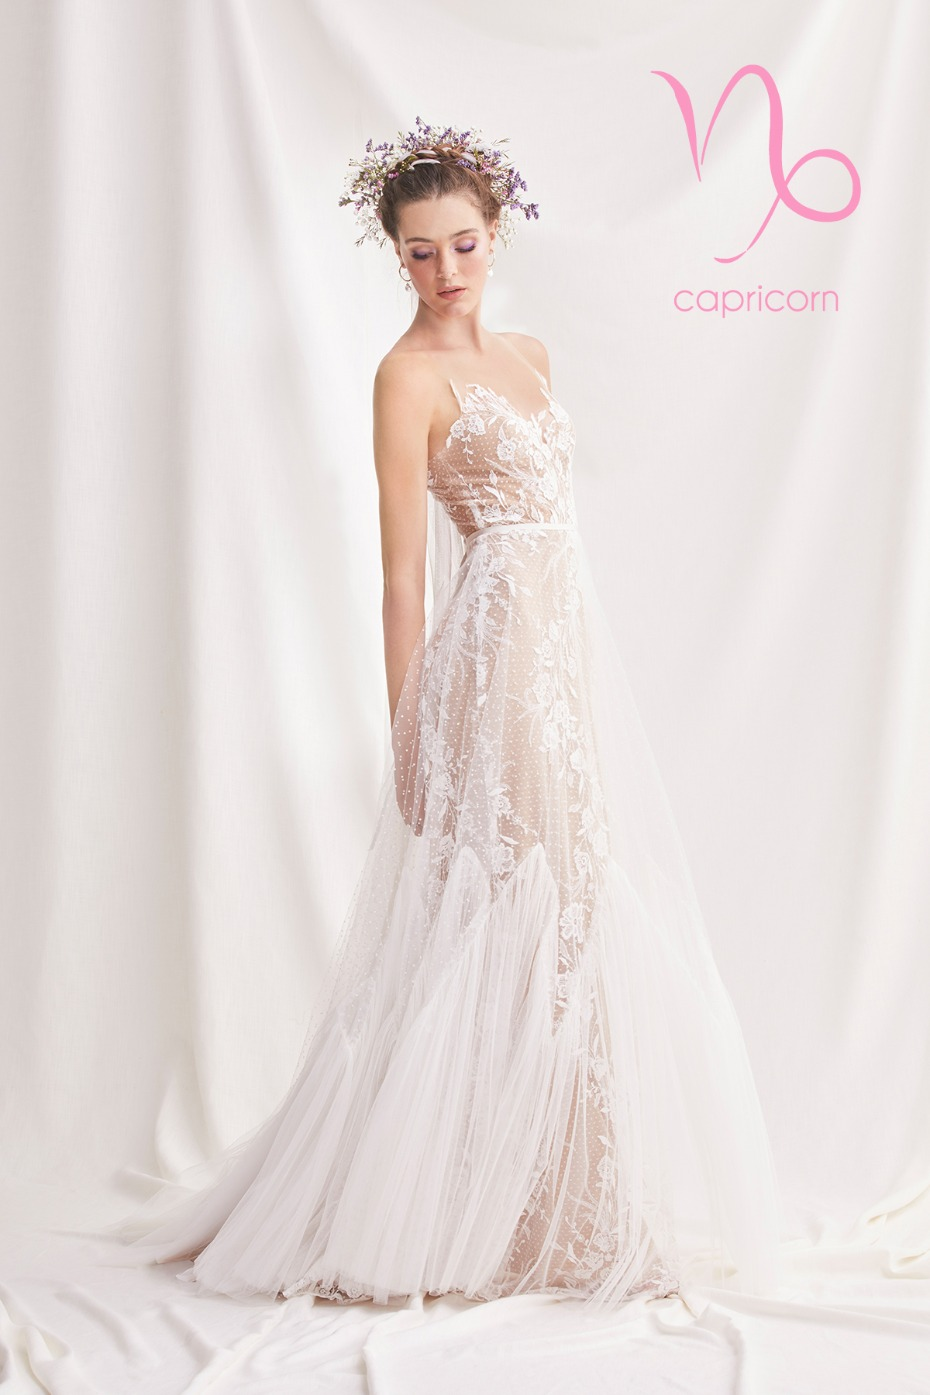 soft illusion dress for the Capricorn Zodiac